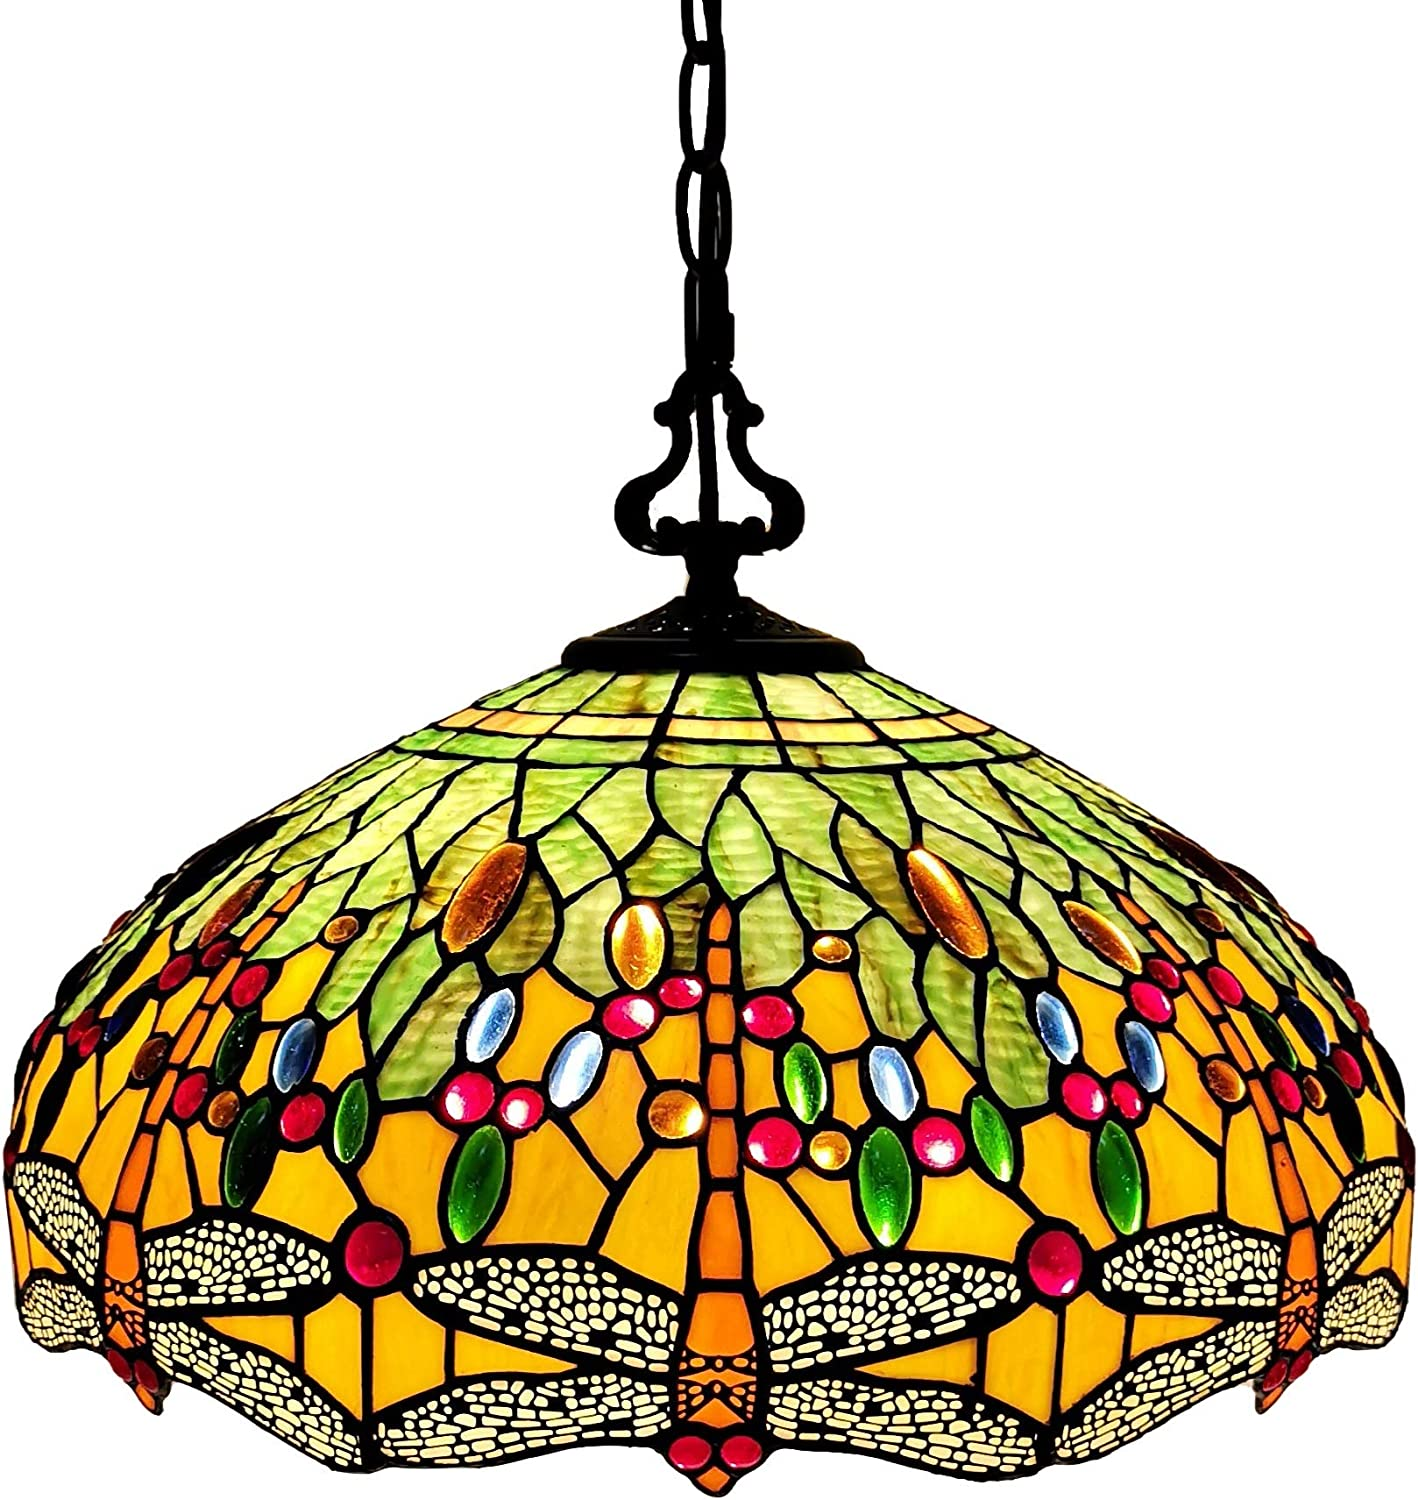 Tiffany Style Hanging Pendant Lamp Ceiling 18 Wide Stained Glass Shade Green Orange Dragonfly Antique Vintage 2 Light Decor Game Living Dining Room Kitchen Gift AM1027HL18B Amora Lighting